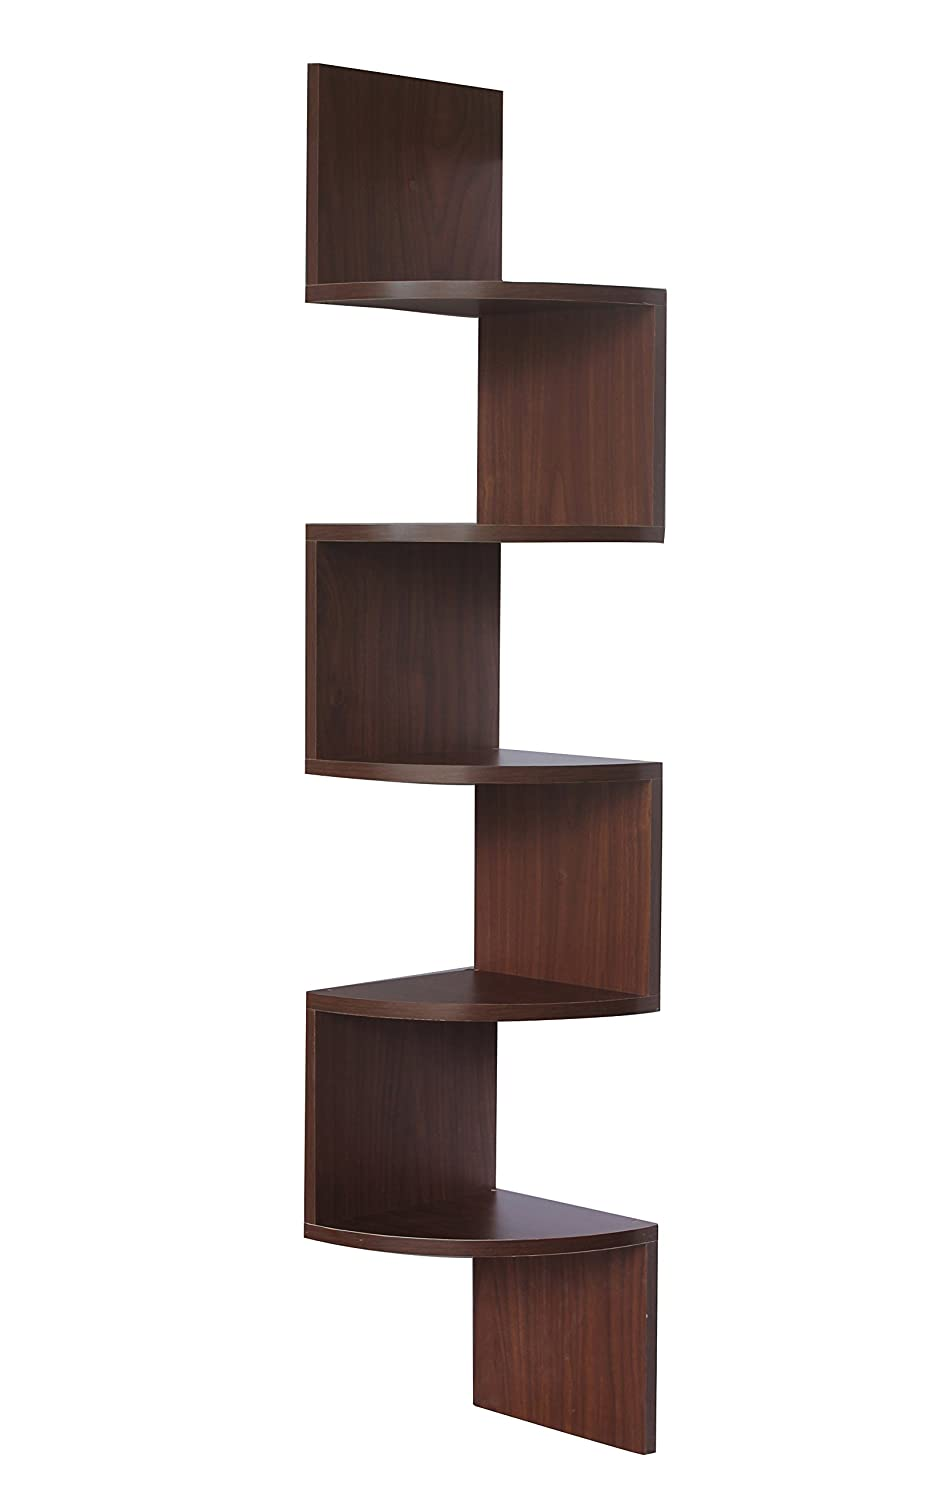 Storage wood floating media shelves design - Walnut Finish Corner Zig Zag Wall Shelf